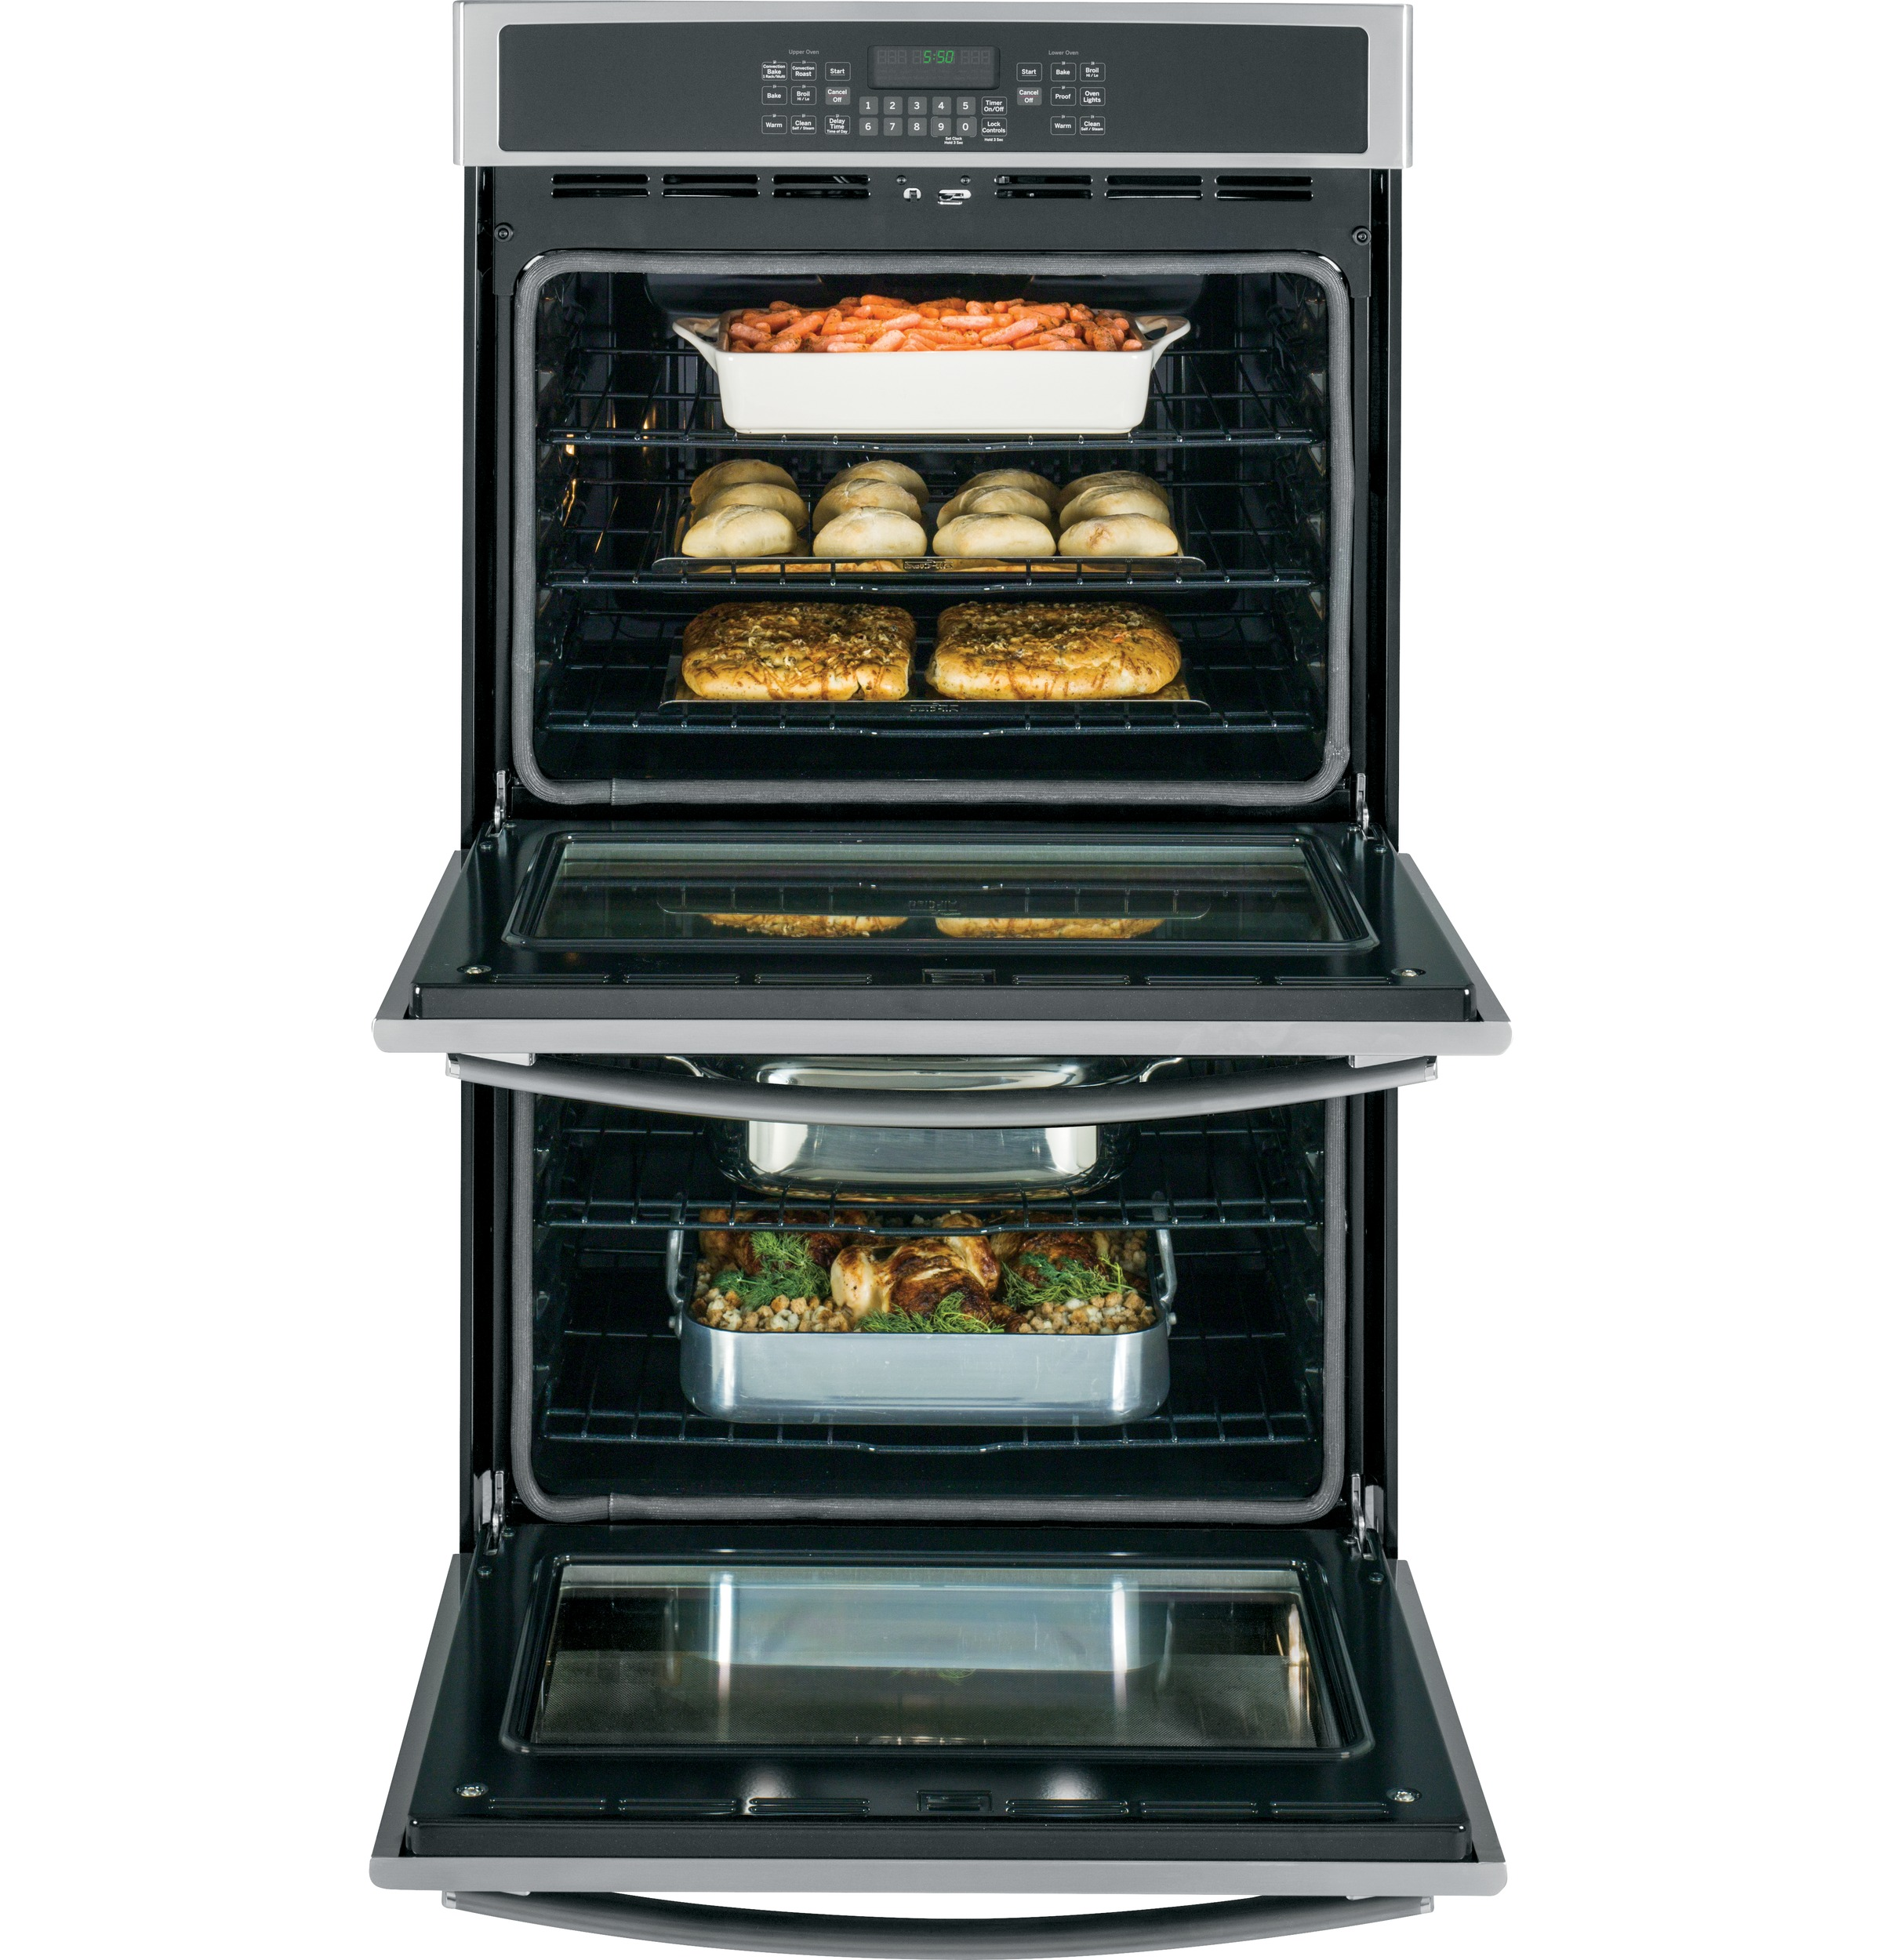 Ge 30 Built In Double Wall Oven With Convection Jt5500sfss Wiring Product Image